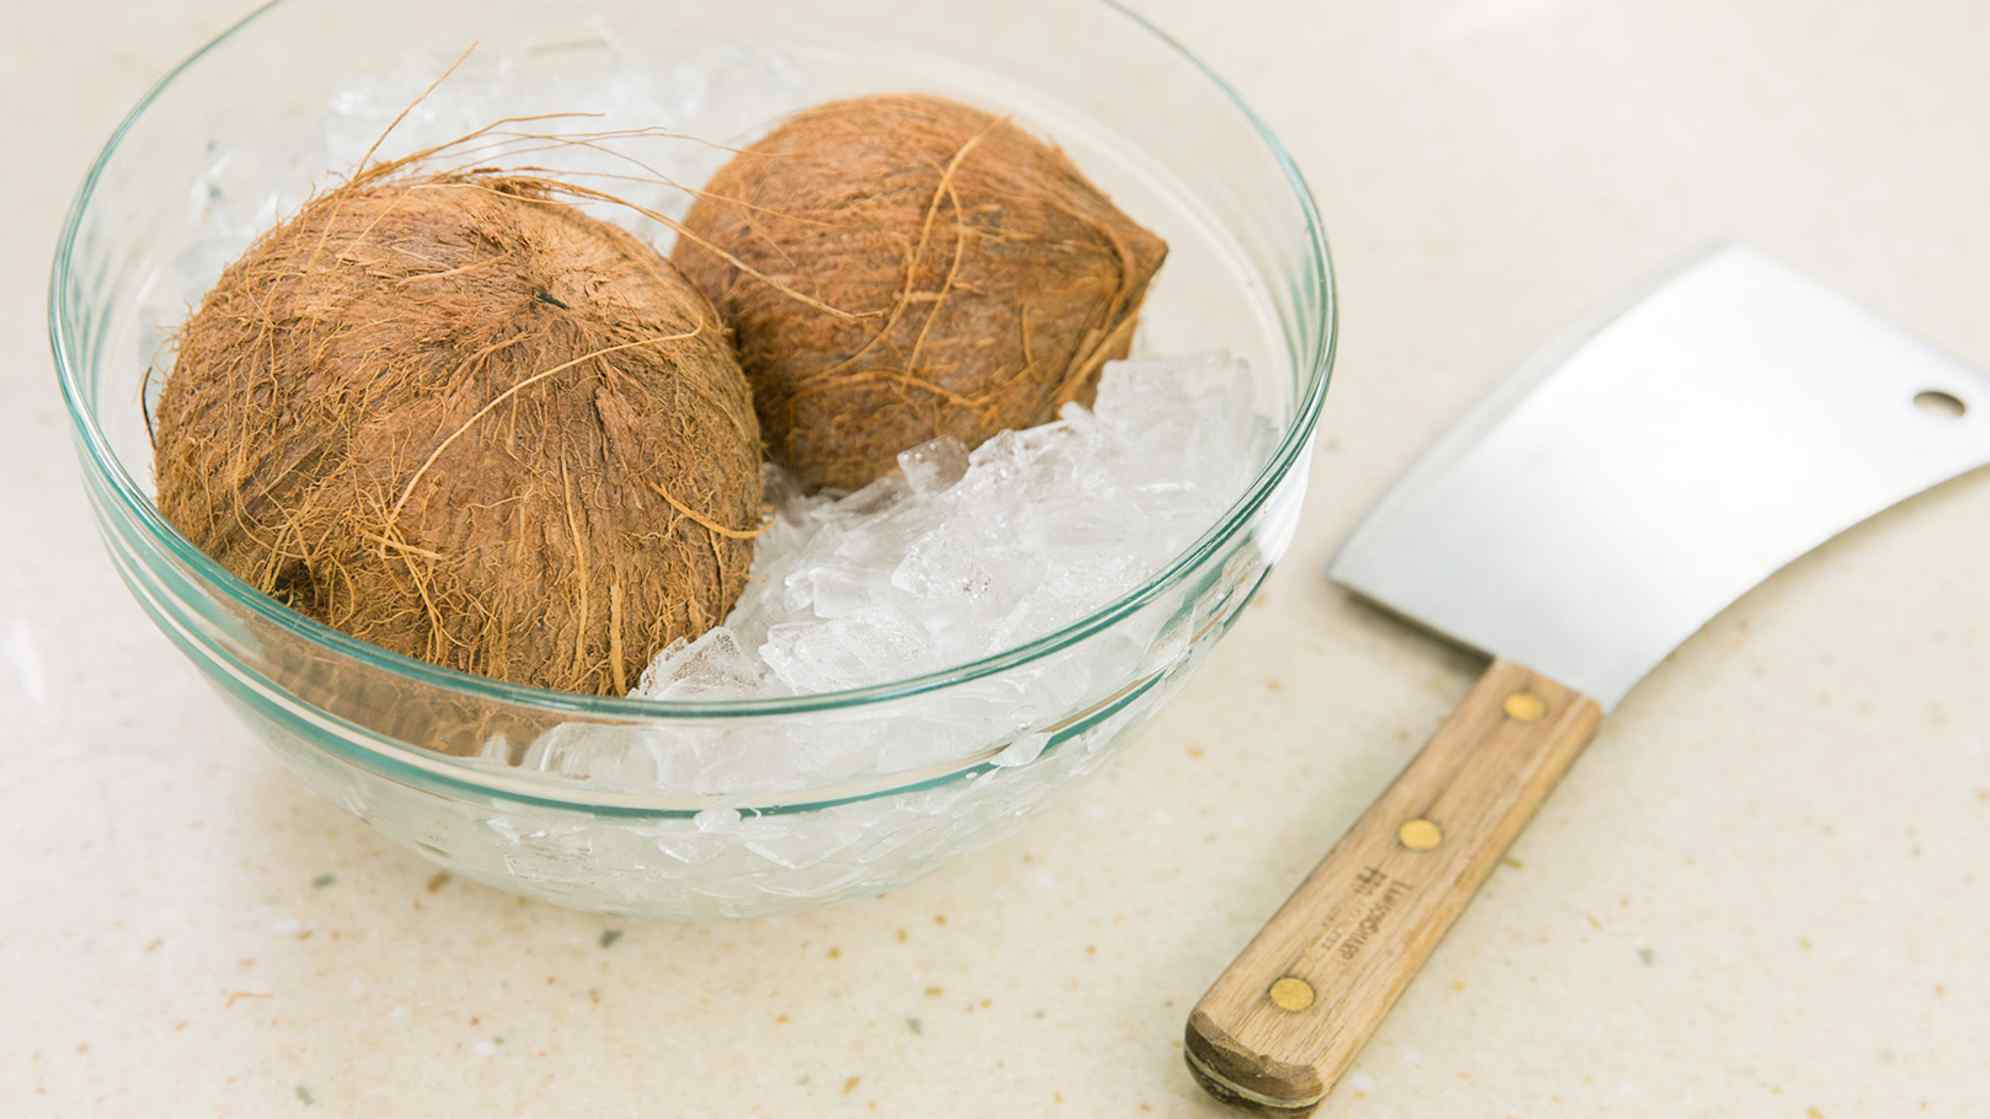 A Better Way to Extract Coconut Meat